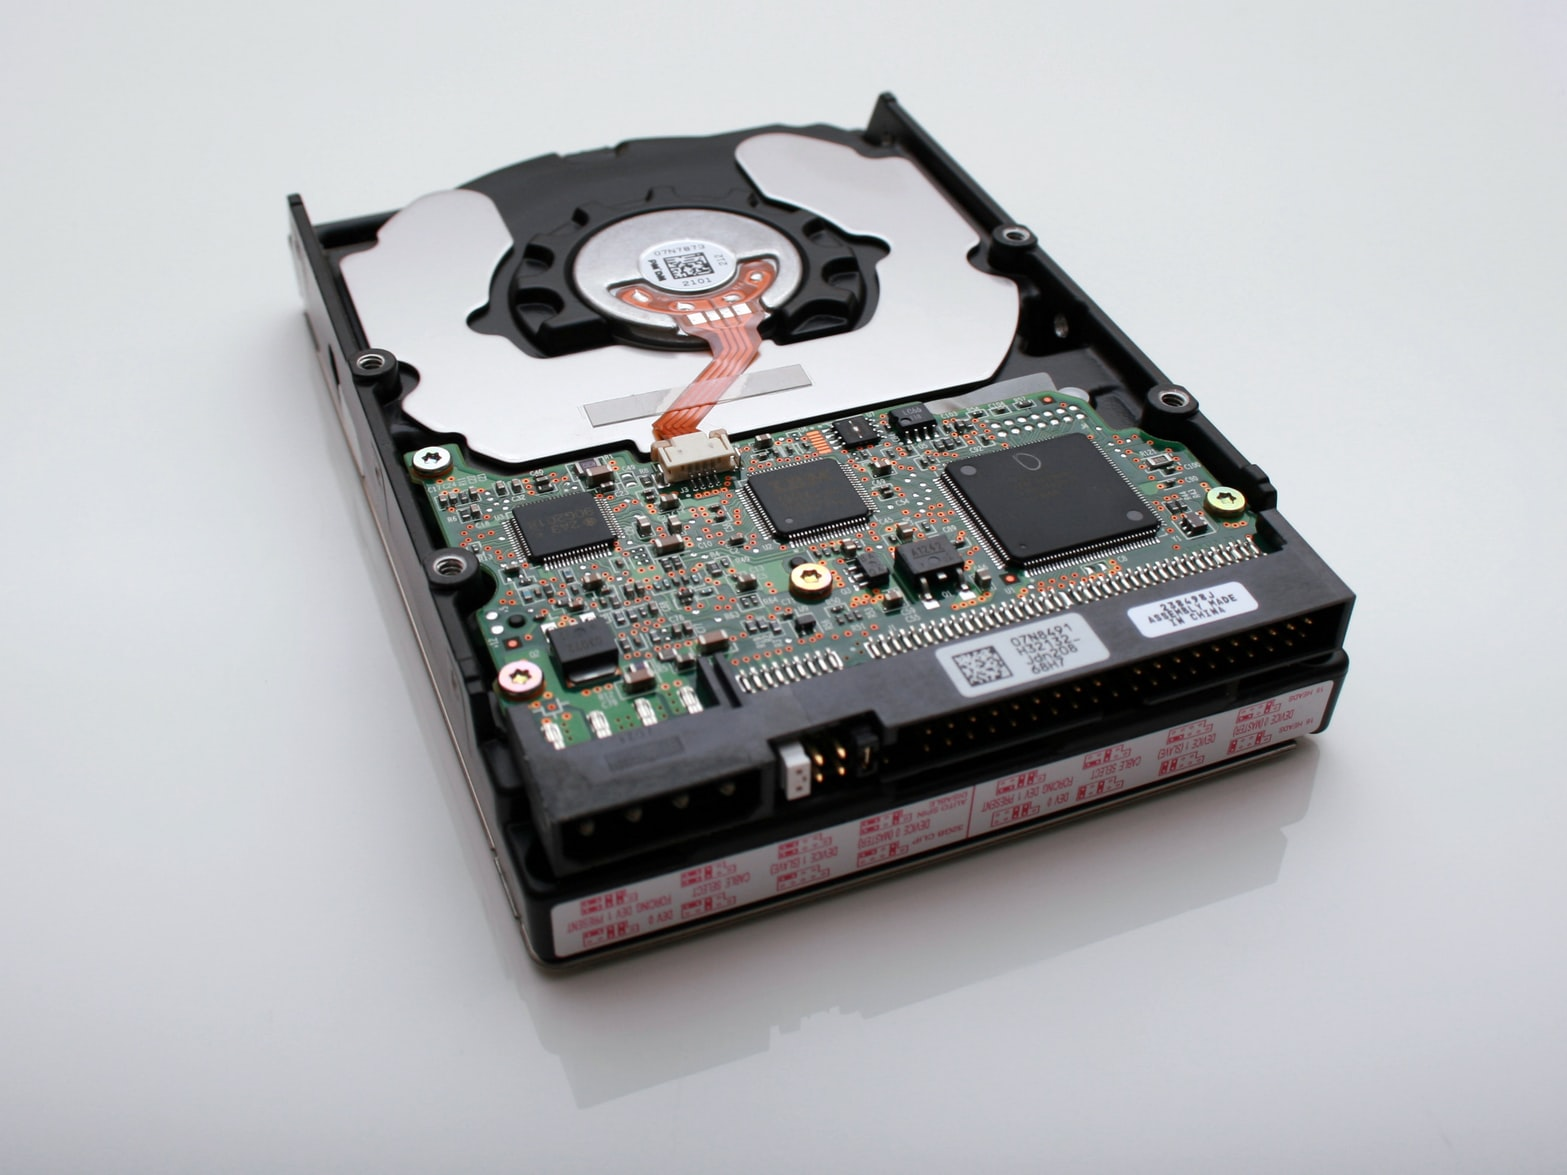 How To Recover Data From Hard Drive